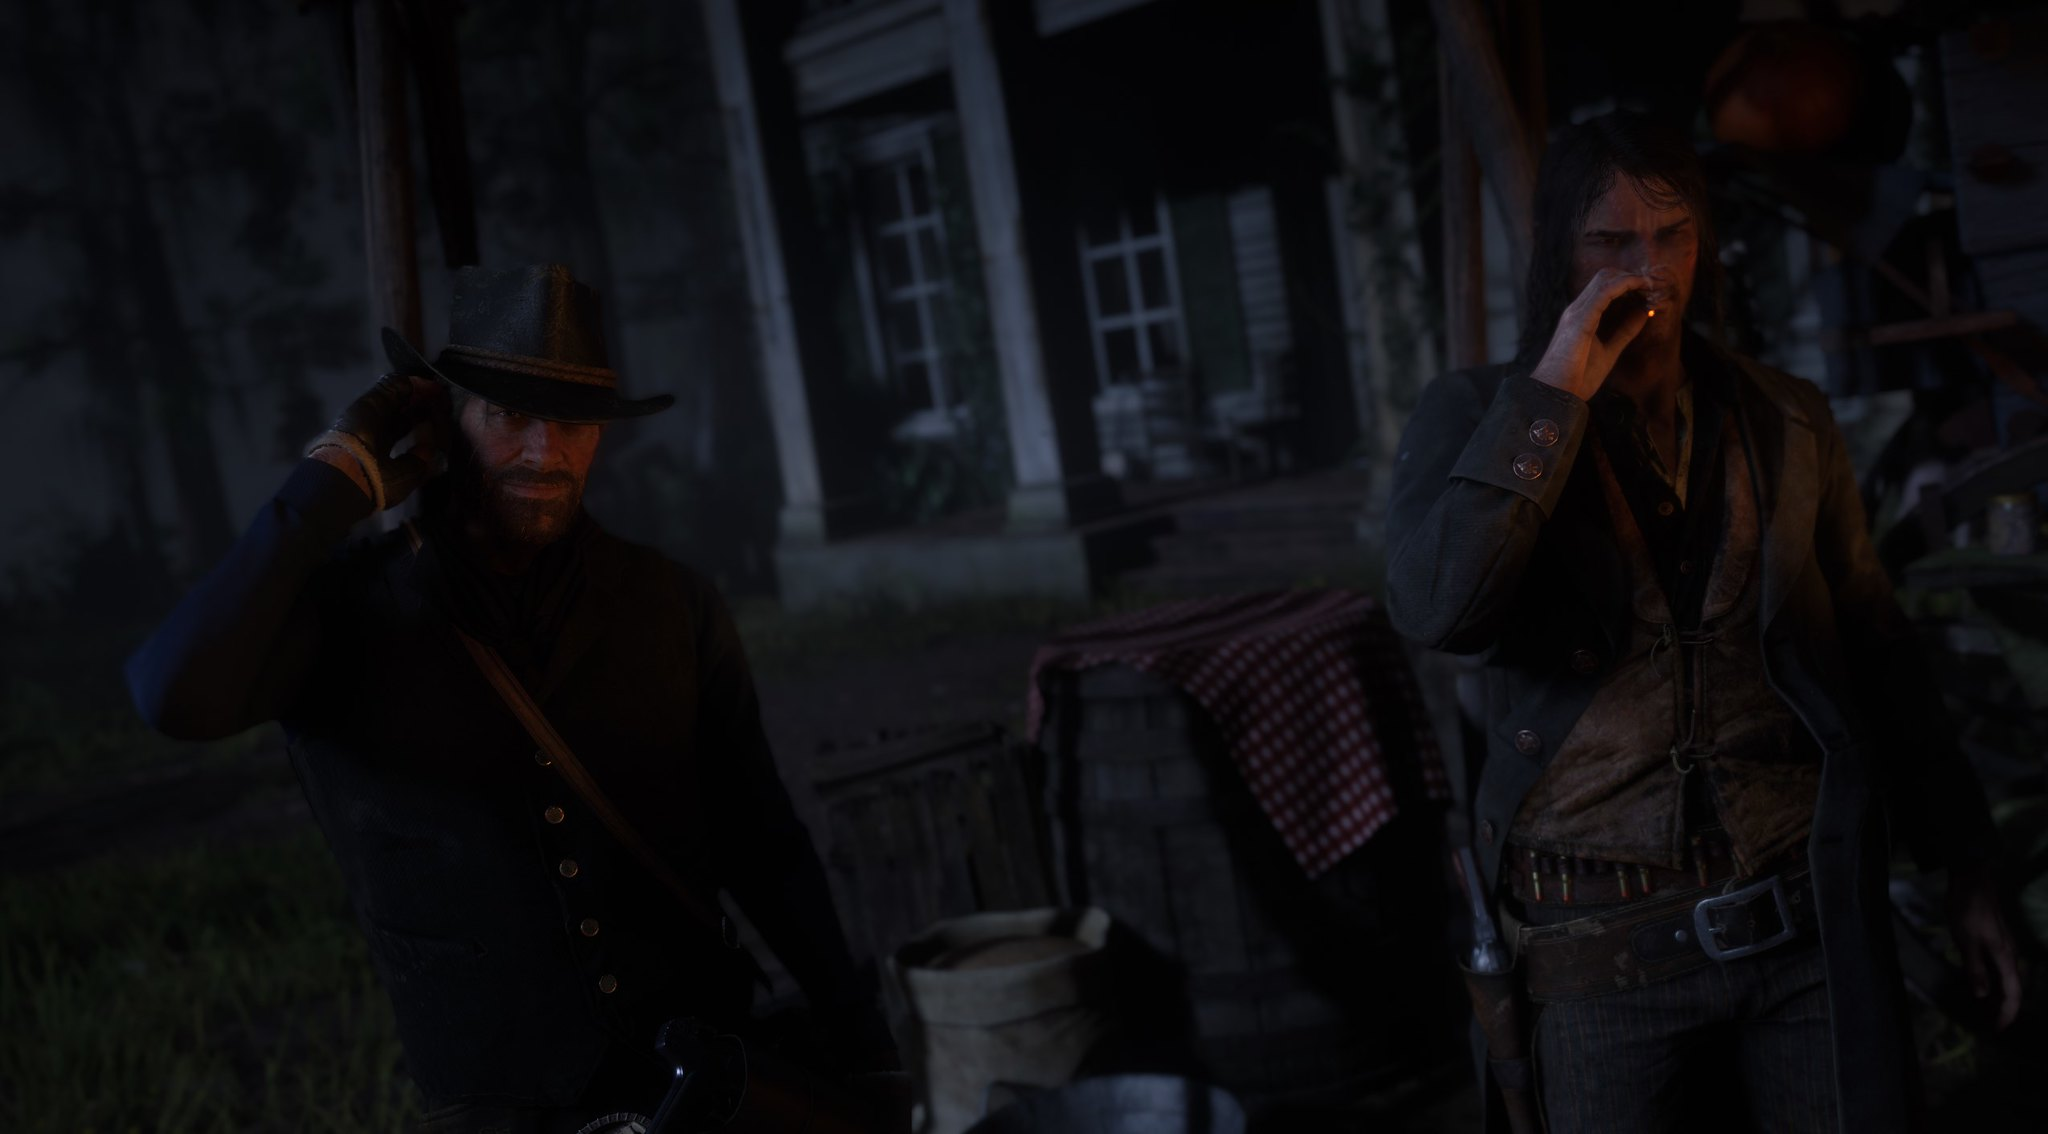 49054644636_6a8a72c557_k.jpg - Red Dead Redemption 2